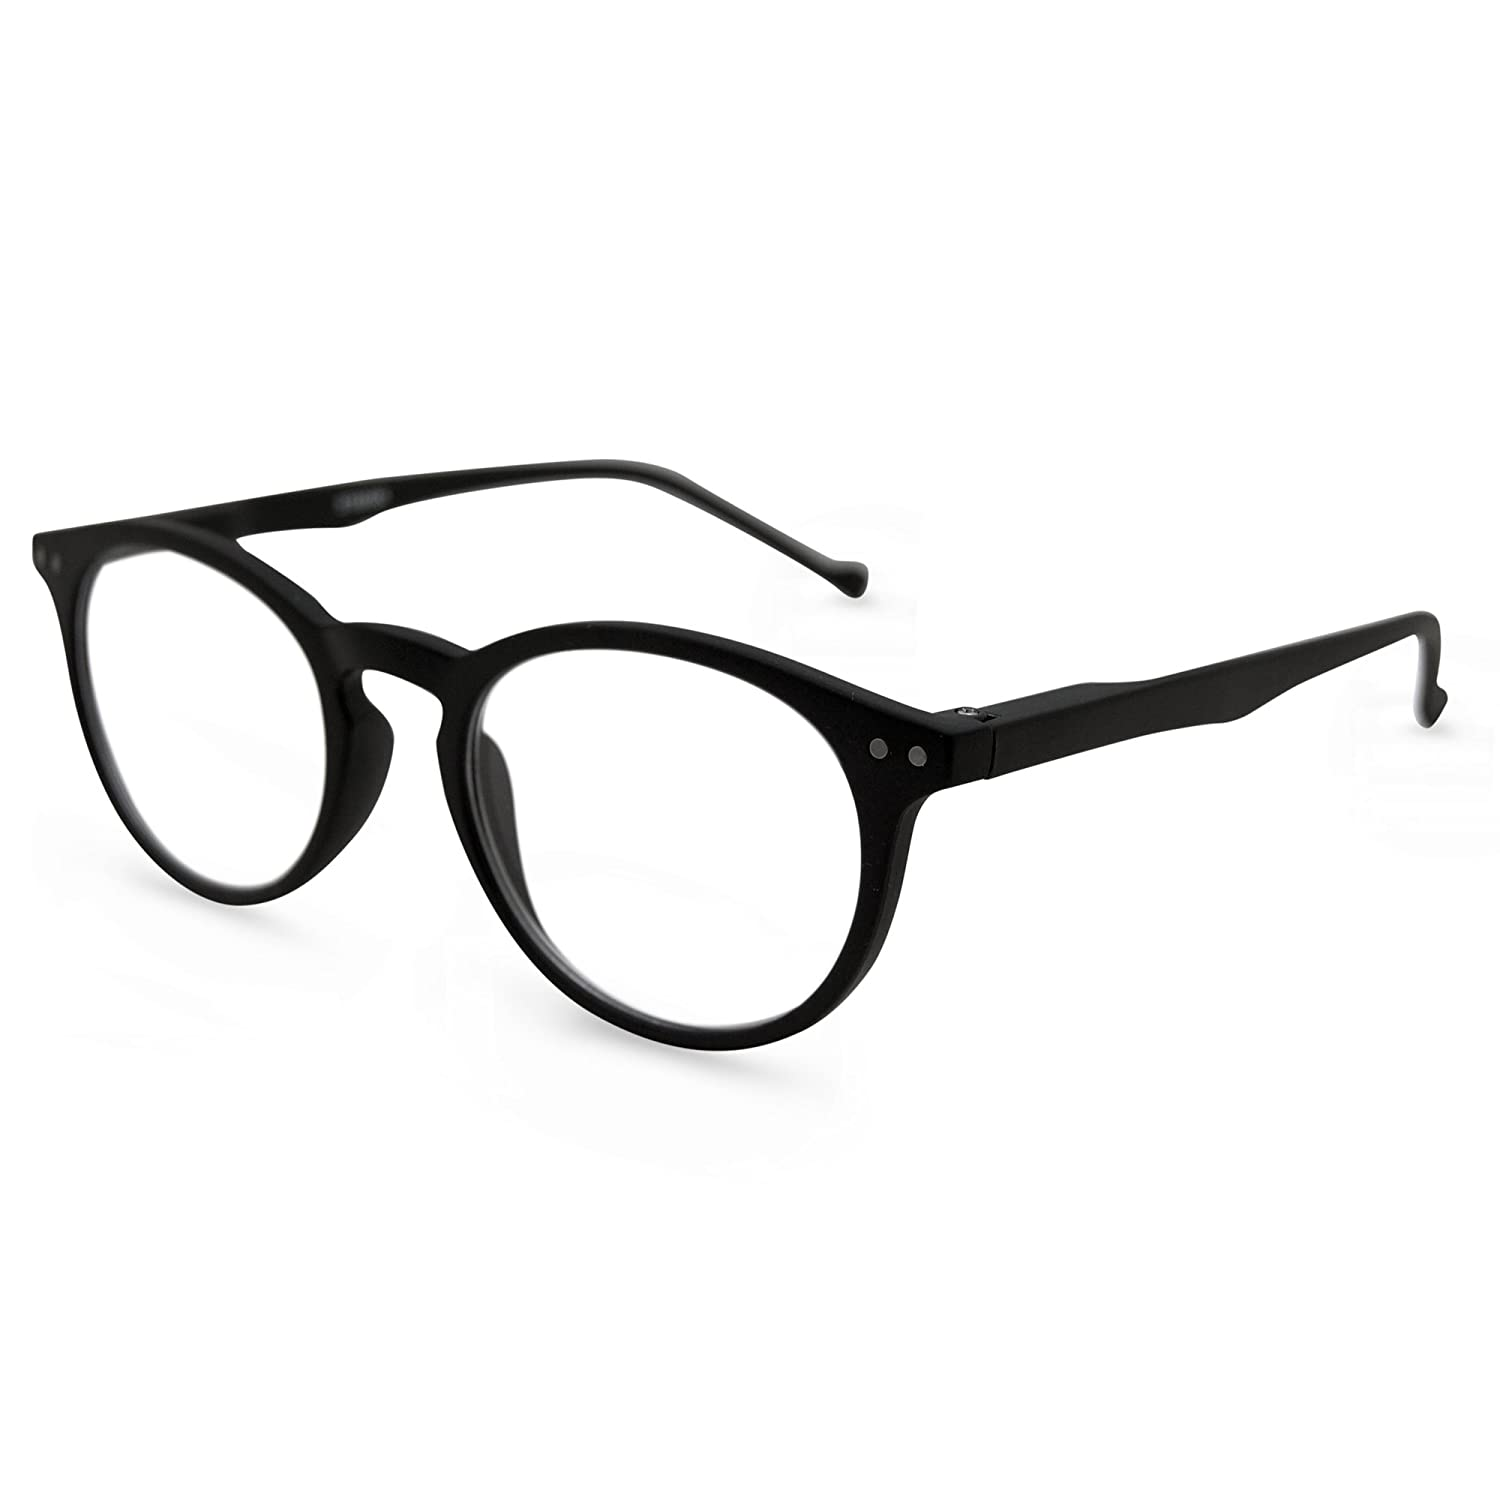 in style eyes flexible readers super comfortable lightweight reading glasses